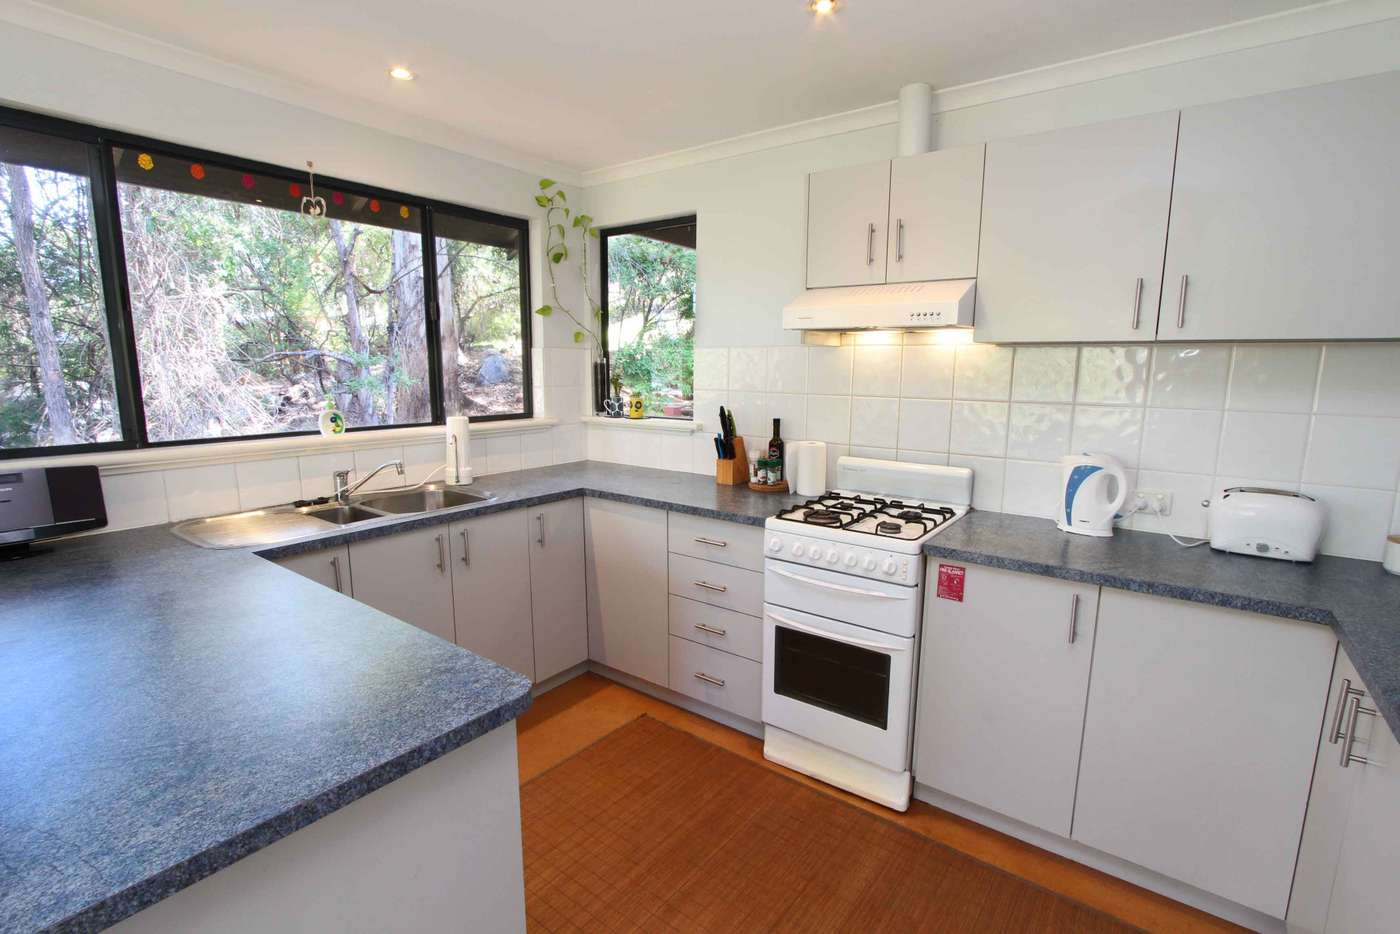 Seventh view of Homely house listing, 46 Bracknell Crescent, Denmark WA 6333